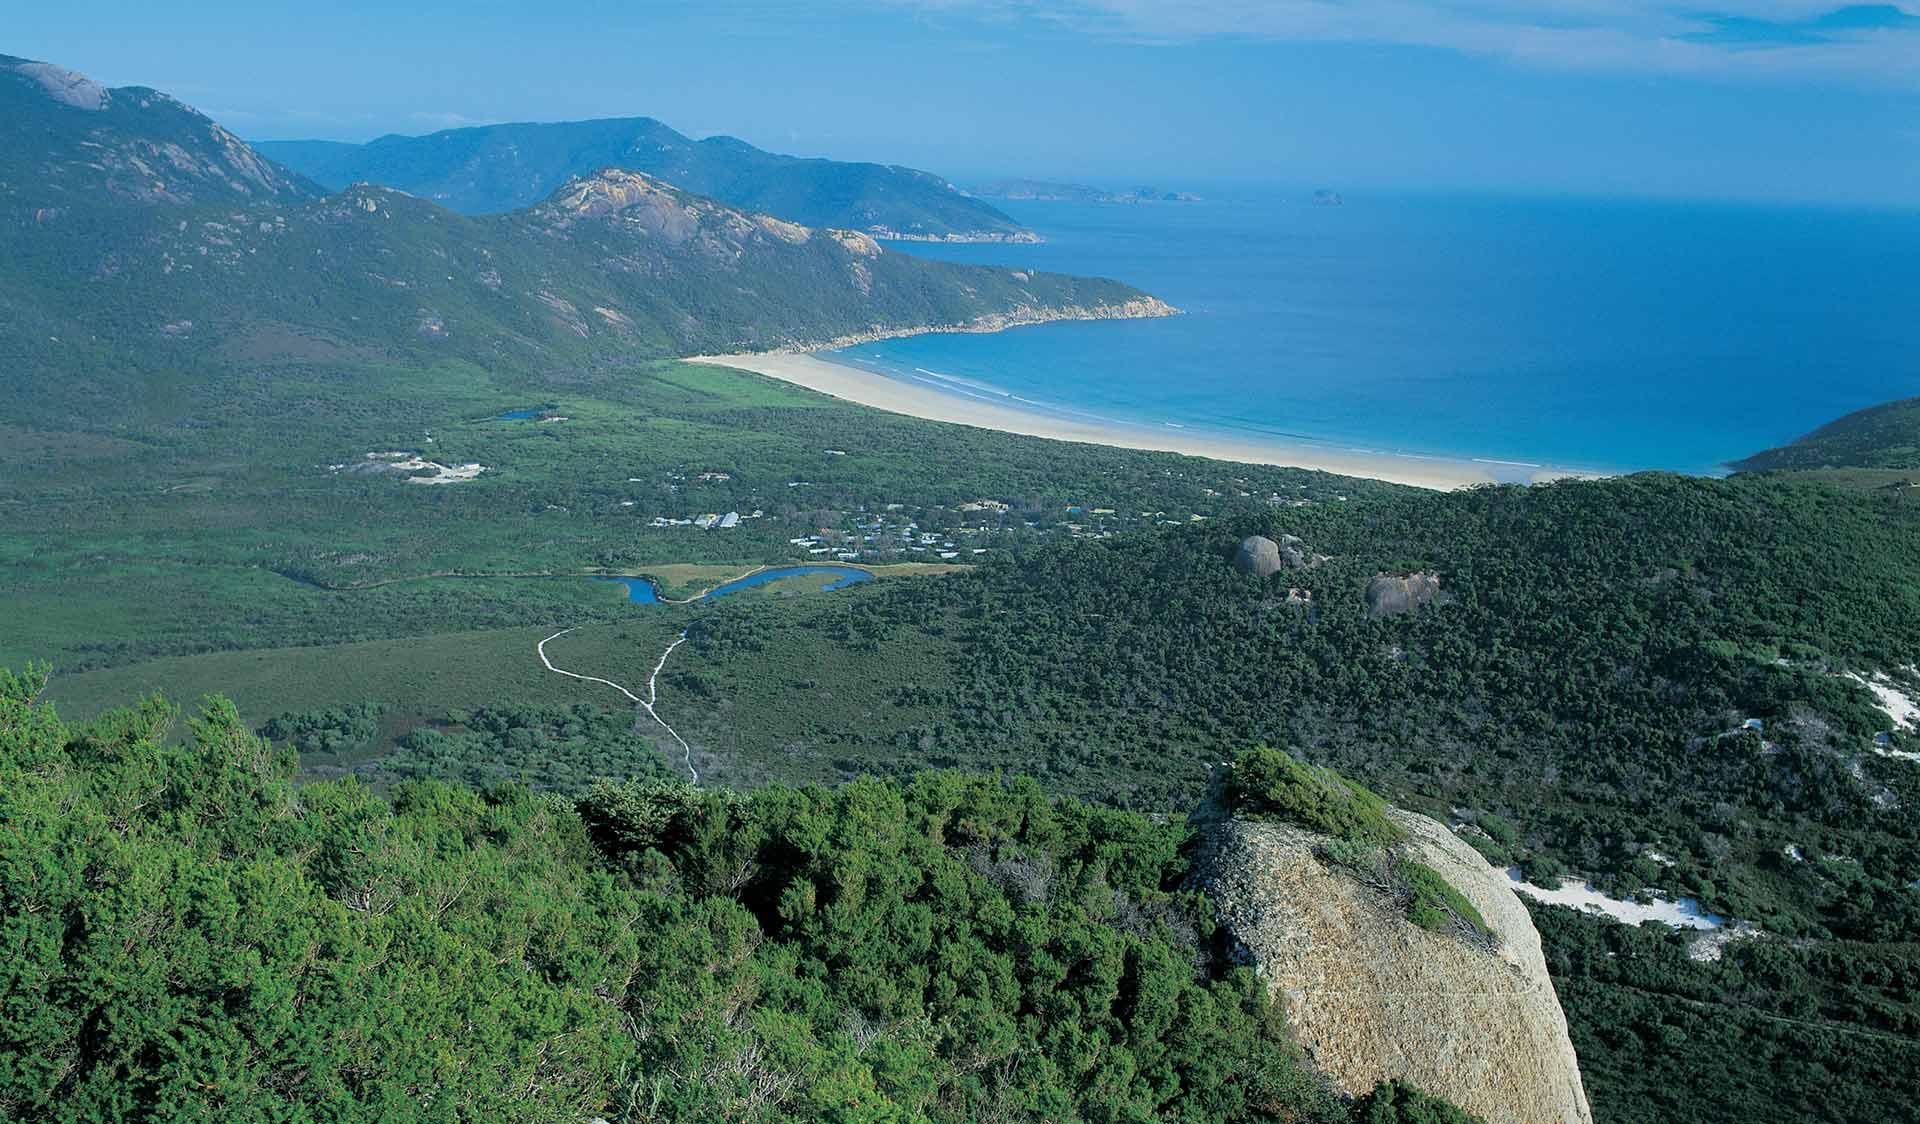 The view from the top of Mt Bishop in Wilsons Promontory National Park.